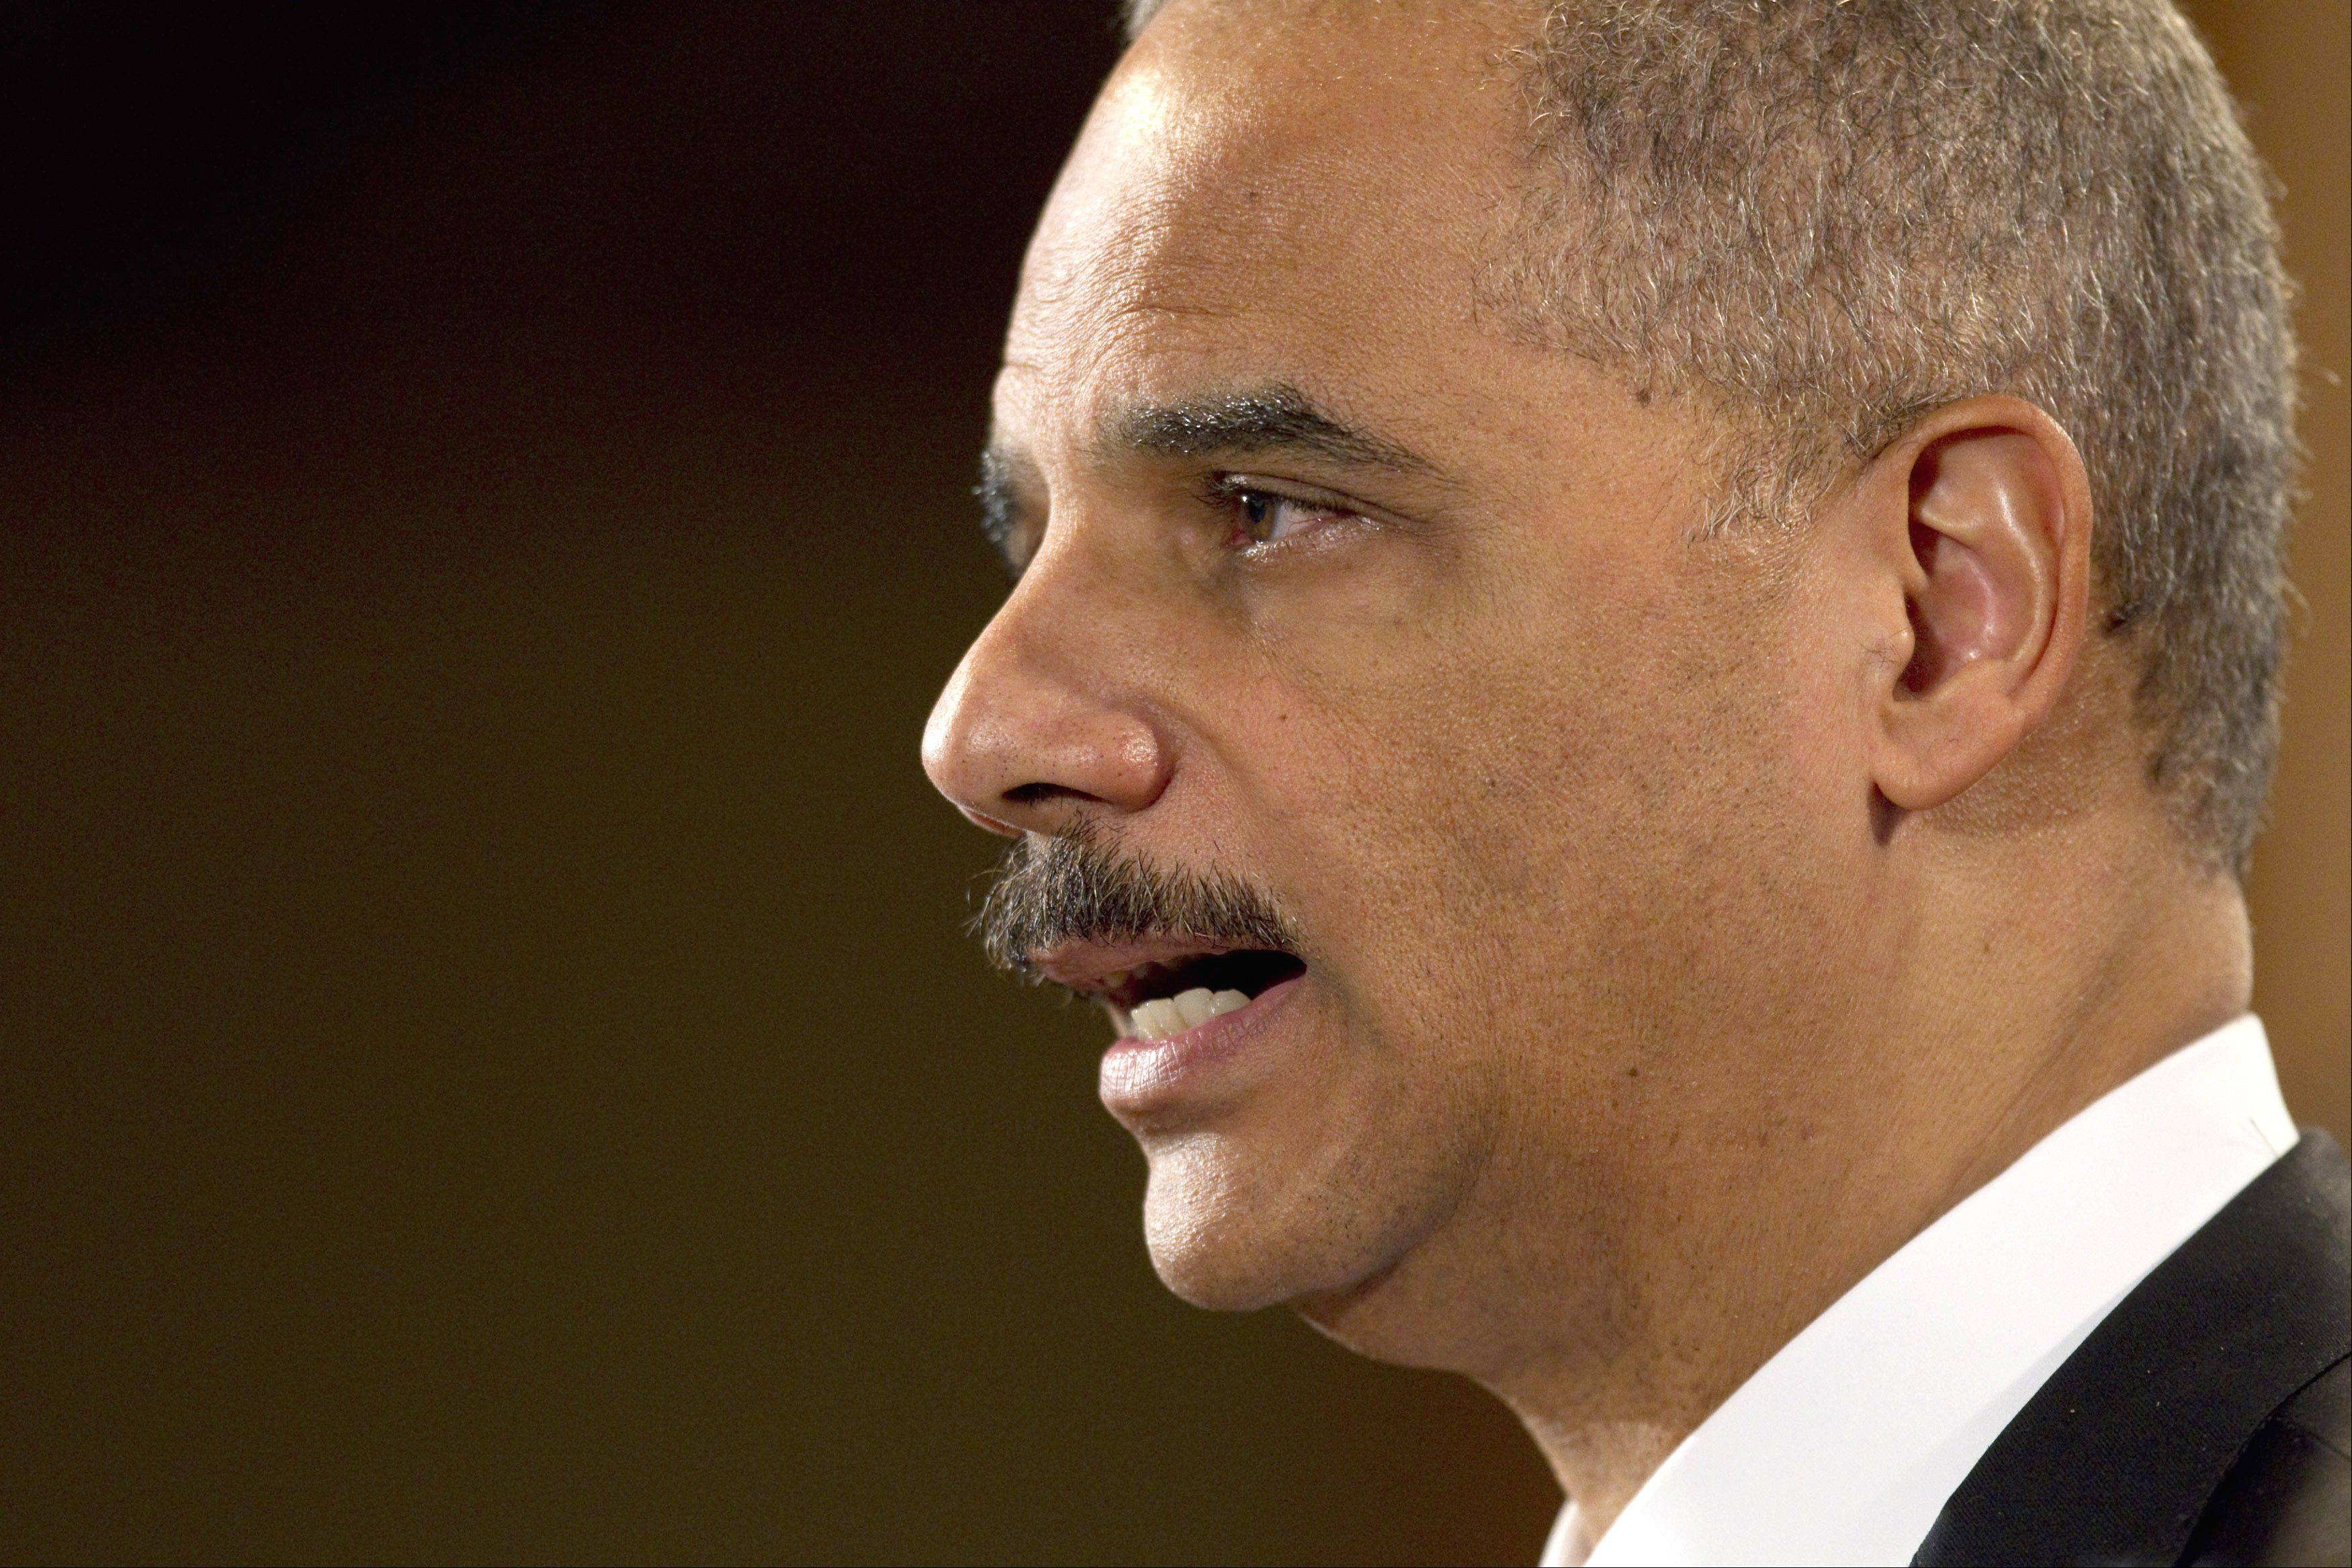 Attorney General Eric Holder says the Obama administration is planning to roll out regulations soon that would allow banks to do business with legal marijuana sellers.